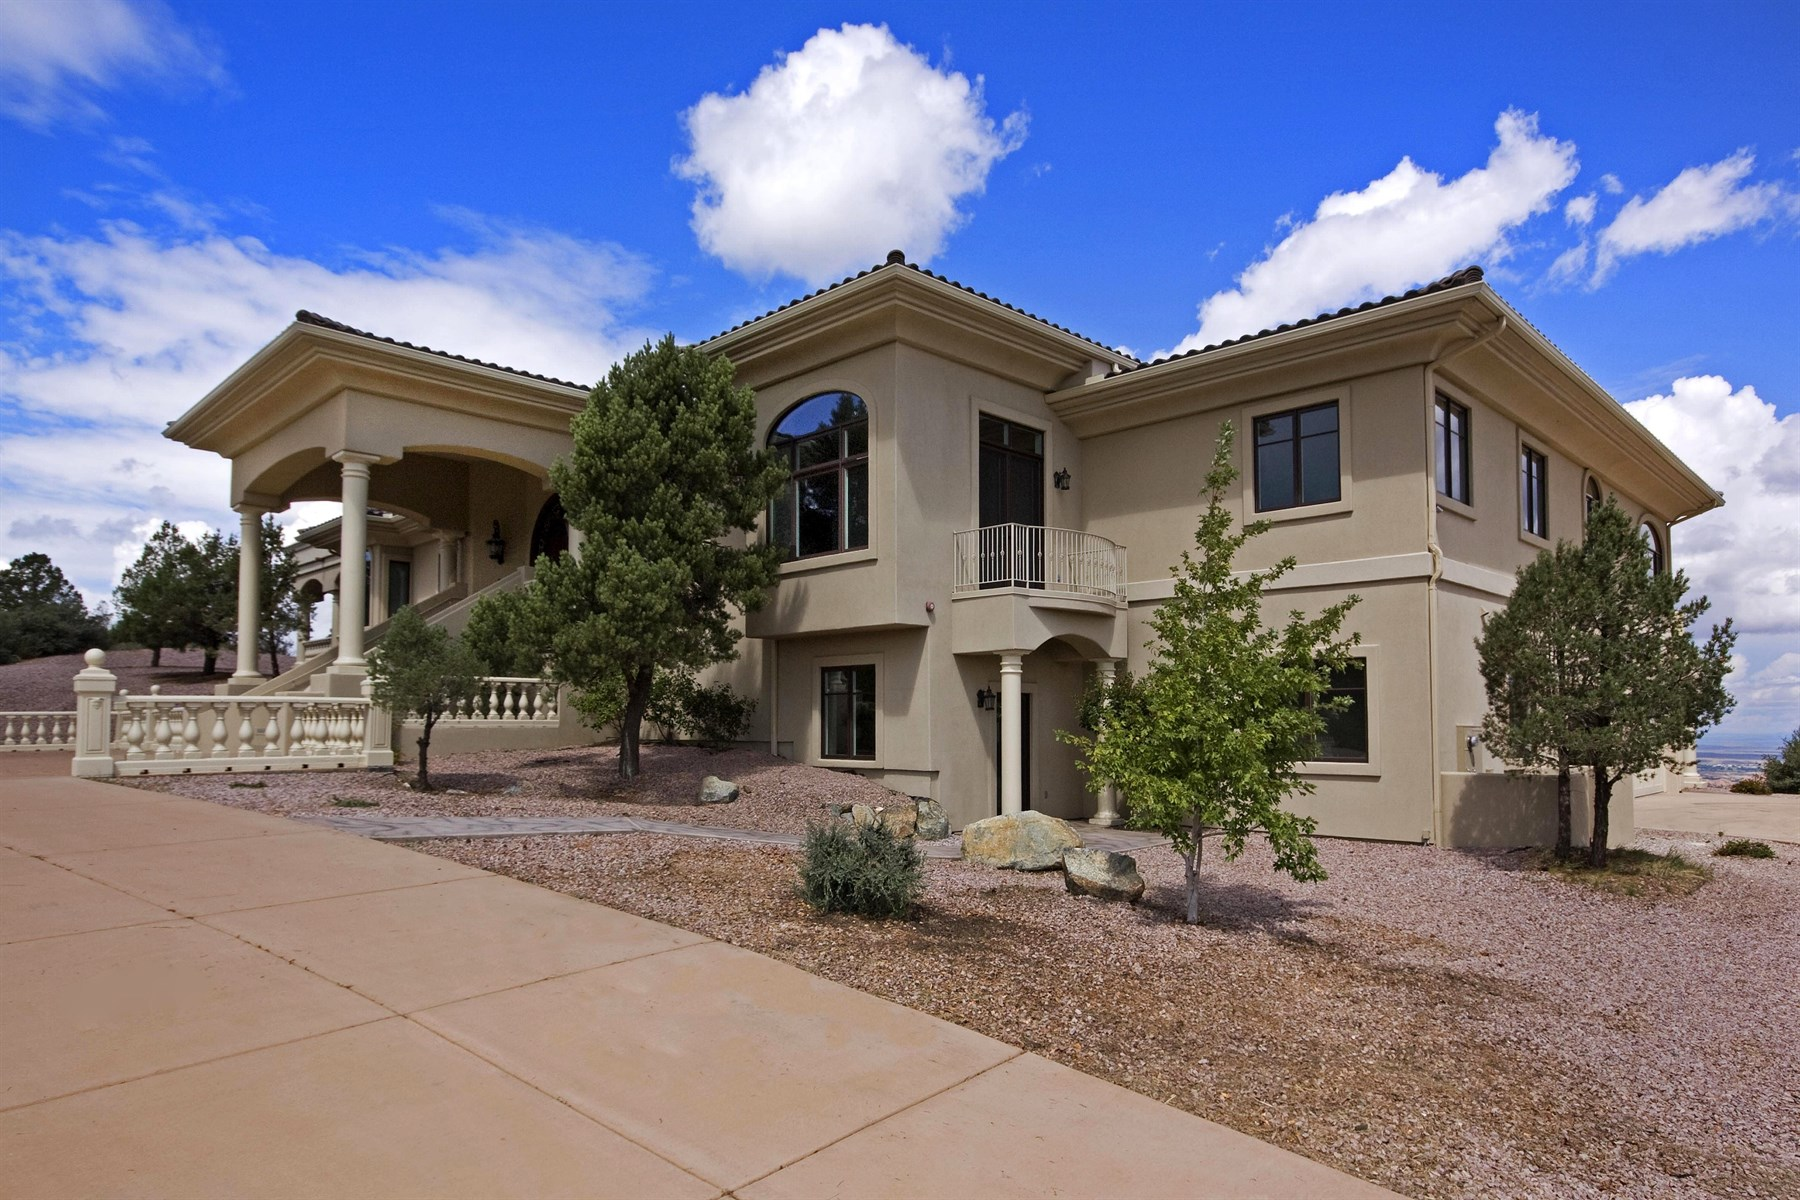 Single Family Home for Sale at Elegant-Spectacular Mansion 208 Echo Hills Prescott, Arizona 86303 United States